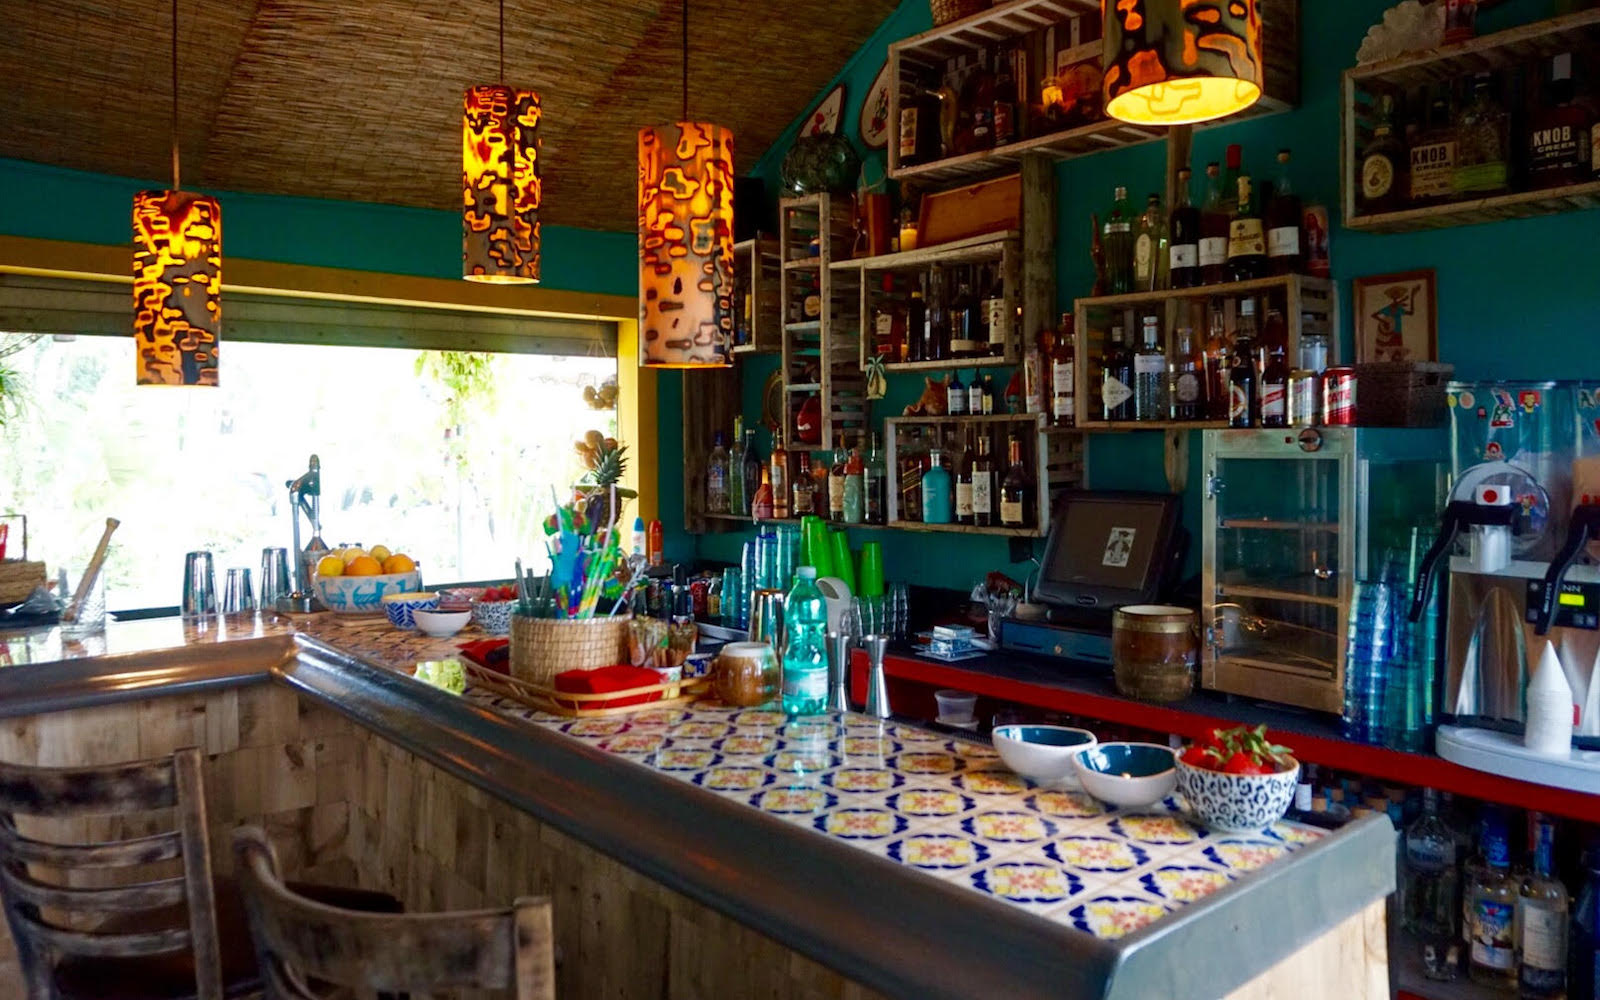 Inside The Shack at The Anderson cocktail bar in Miami